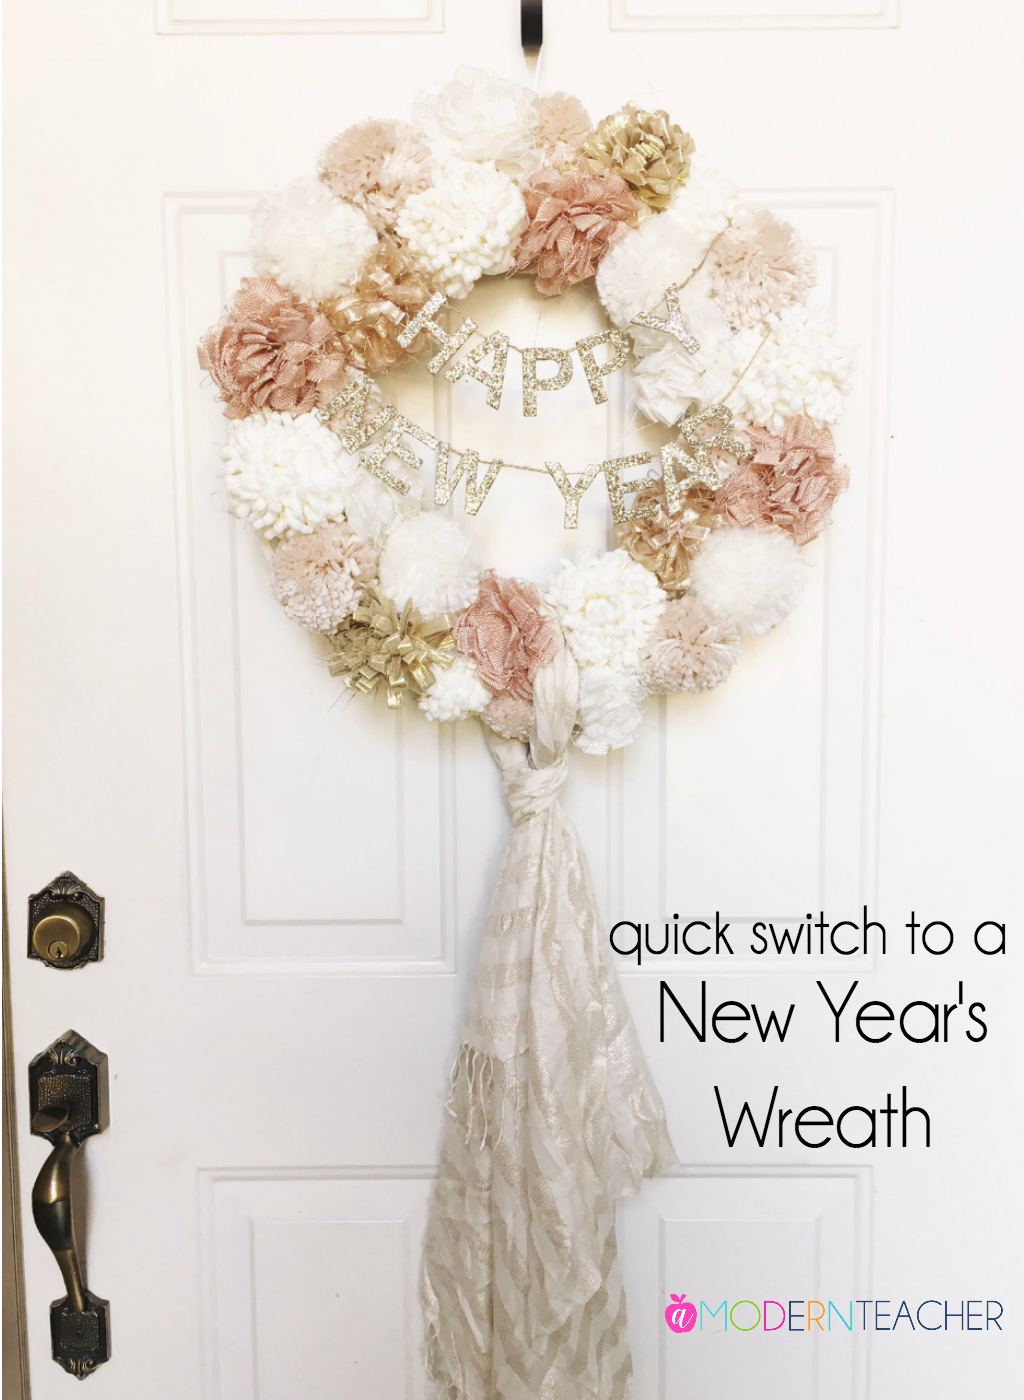 New Year's Eve Wreath idea   A quick idea on changing your Christmas wreath to a New Year's wreath